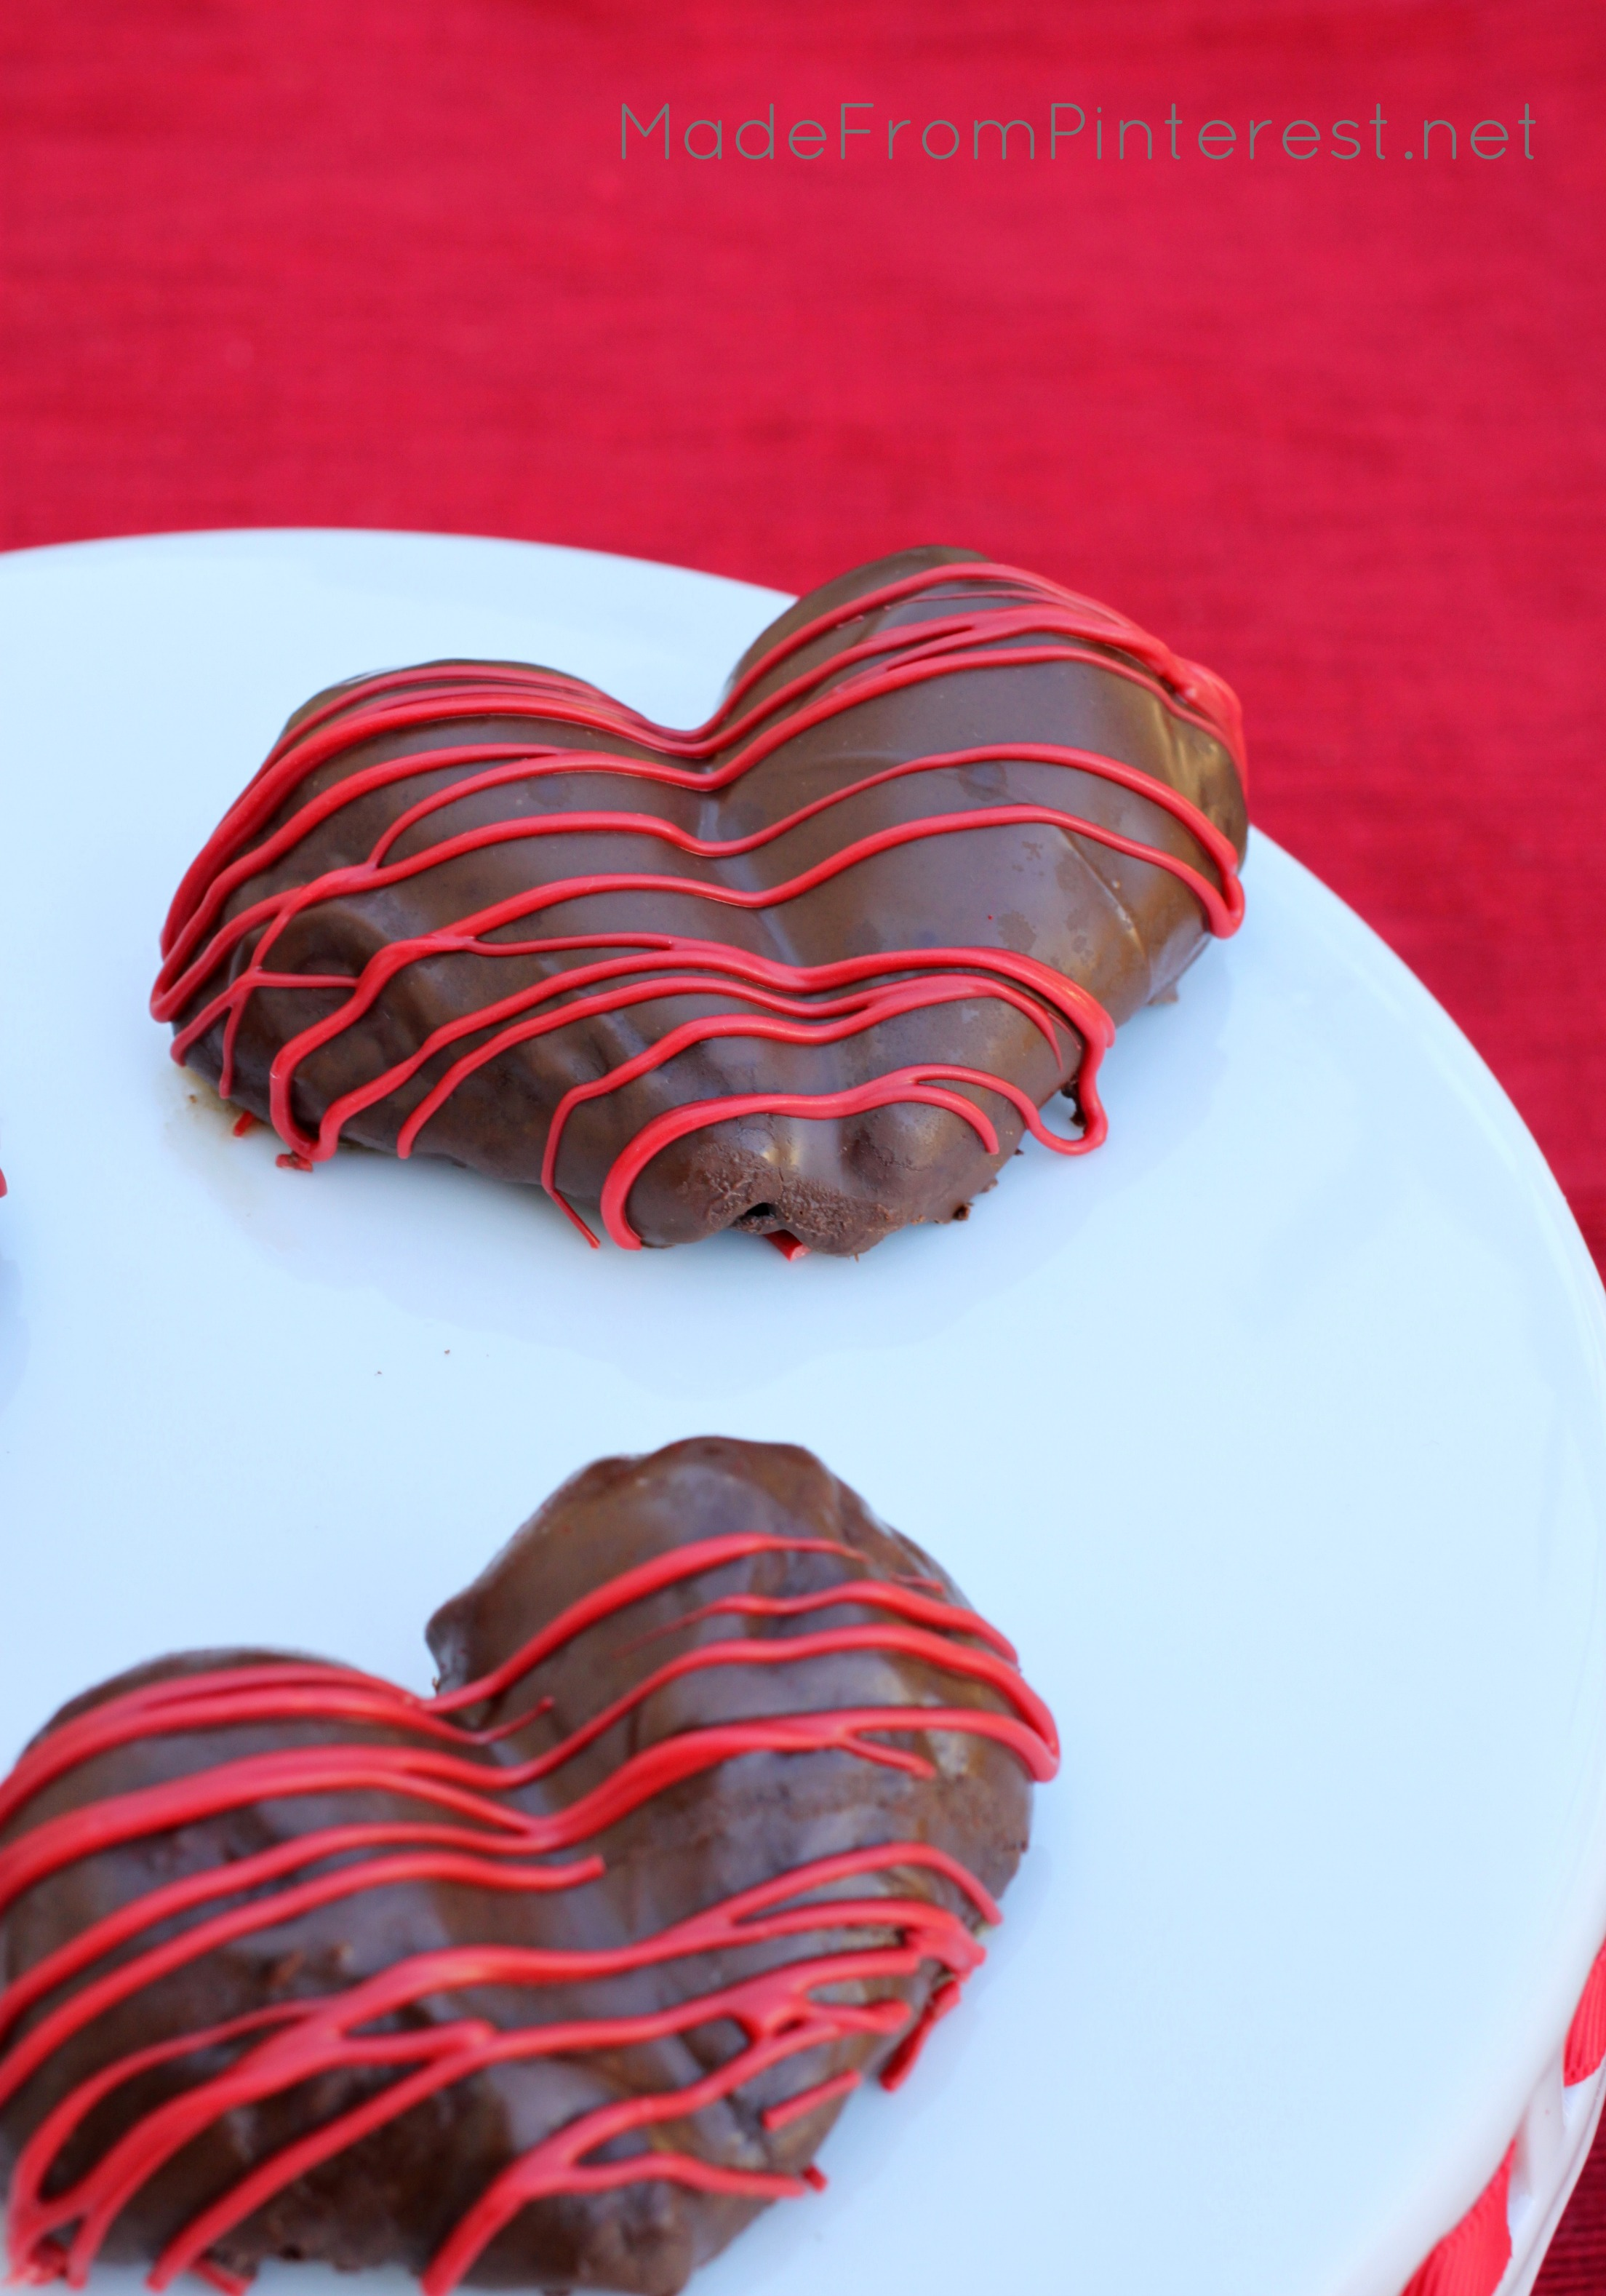 Heart Shaped Chocolate Strawberries Made From Pinterest